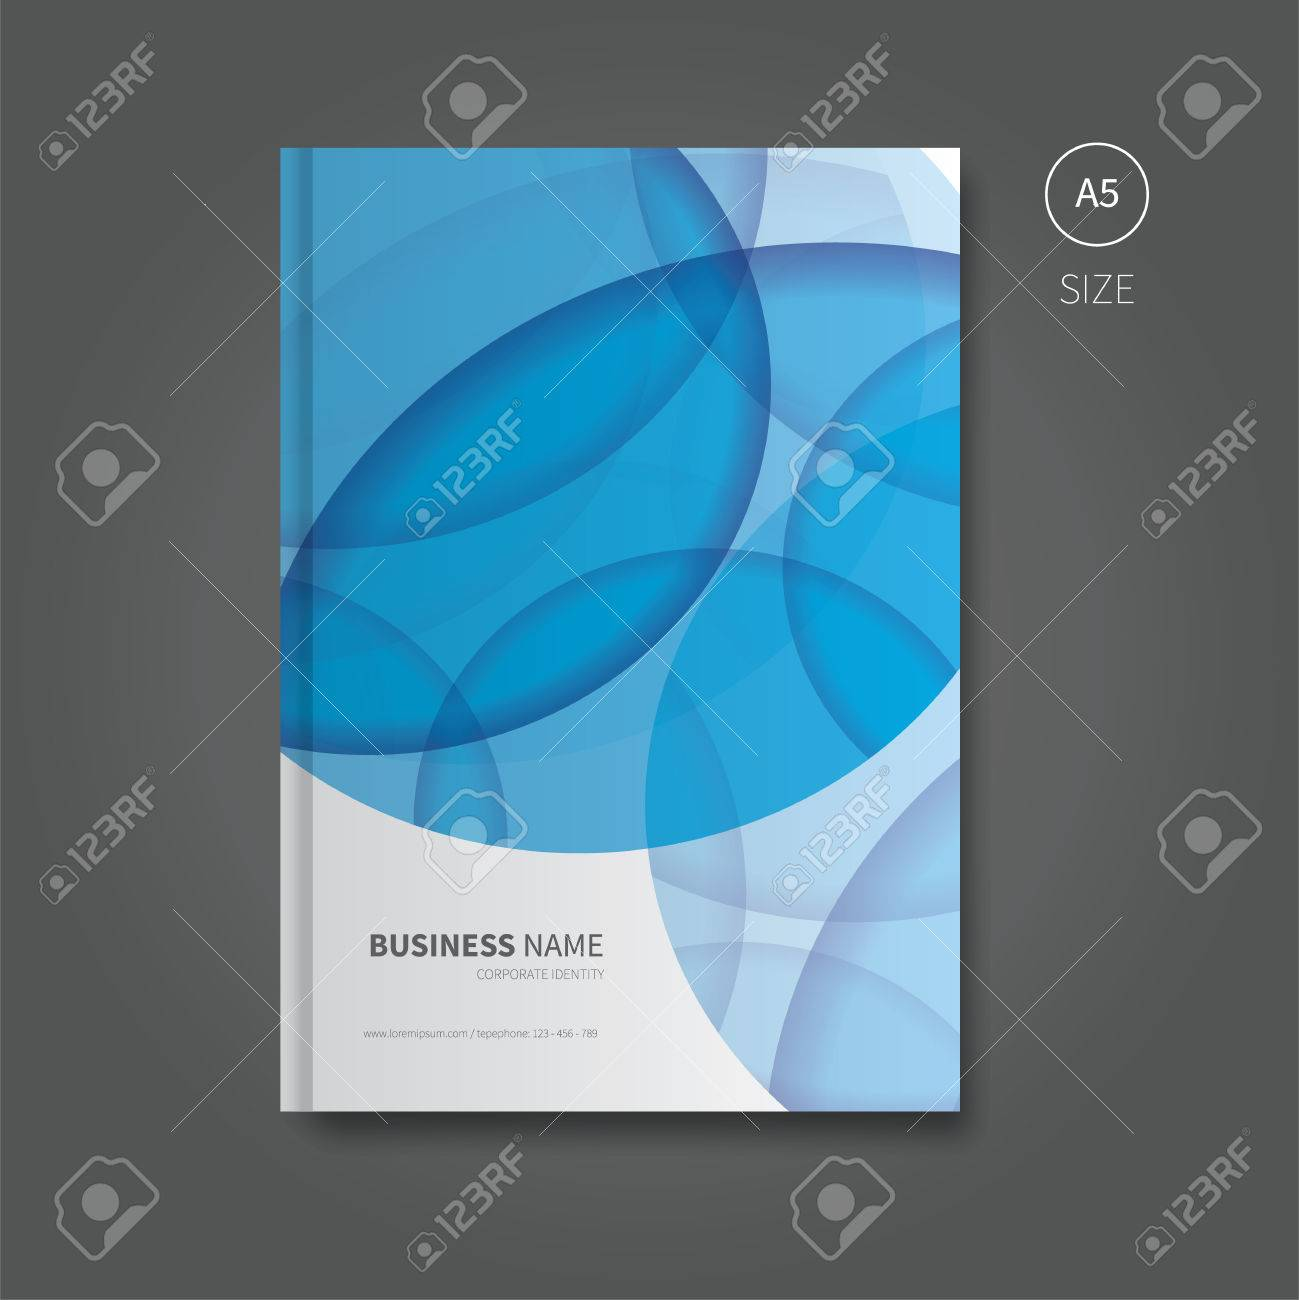 first page design of brochure or book royalty cliparts vector first page design of brochure or book